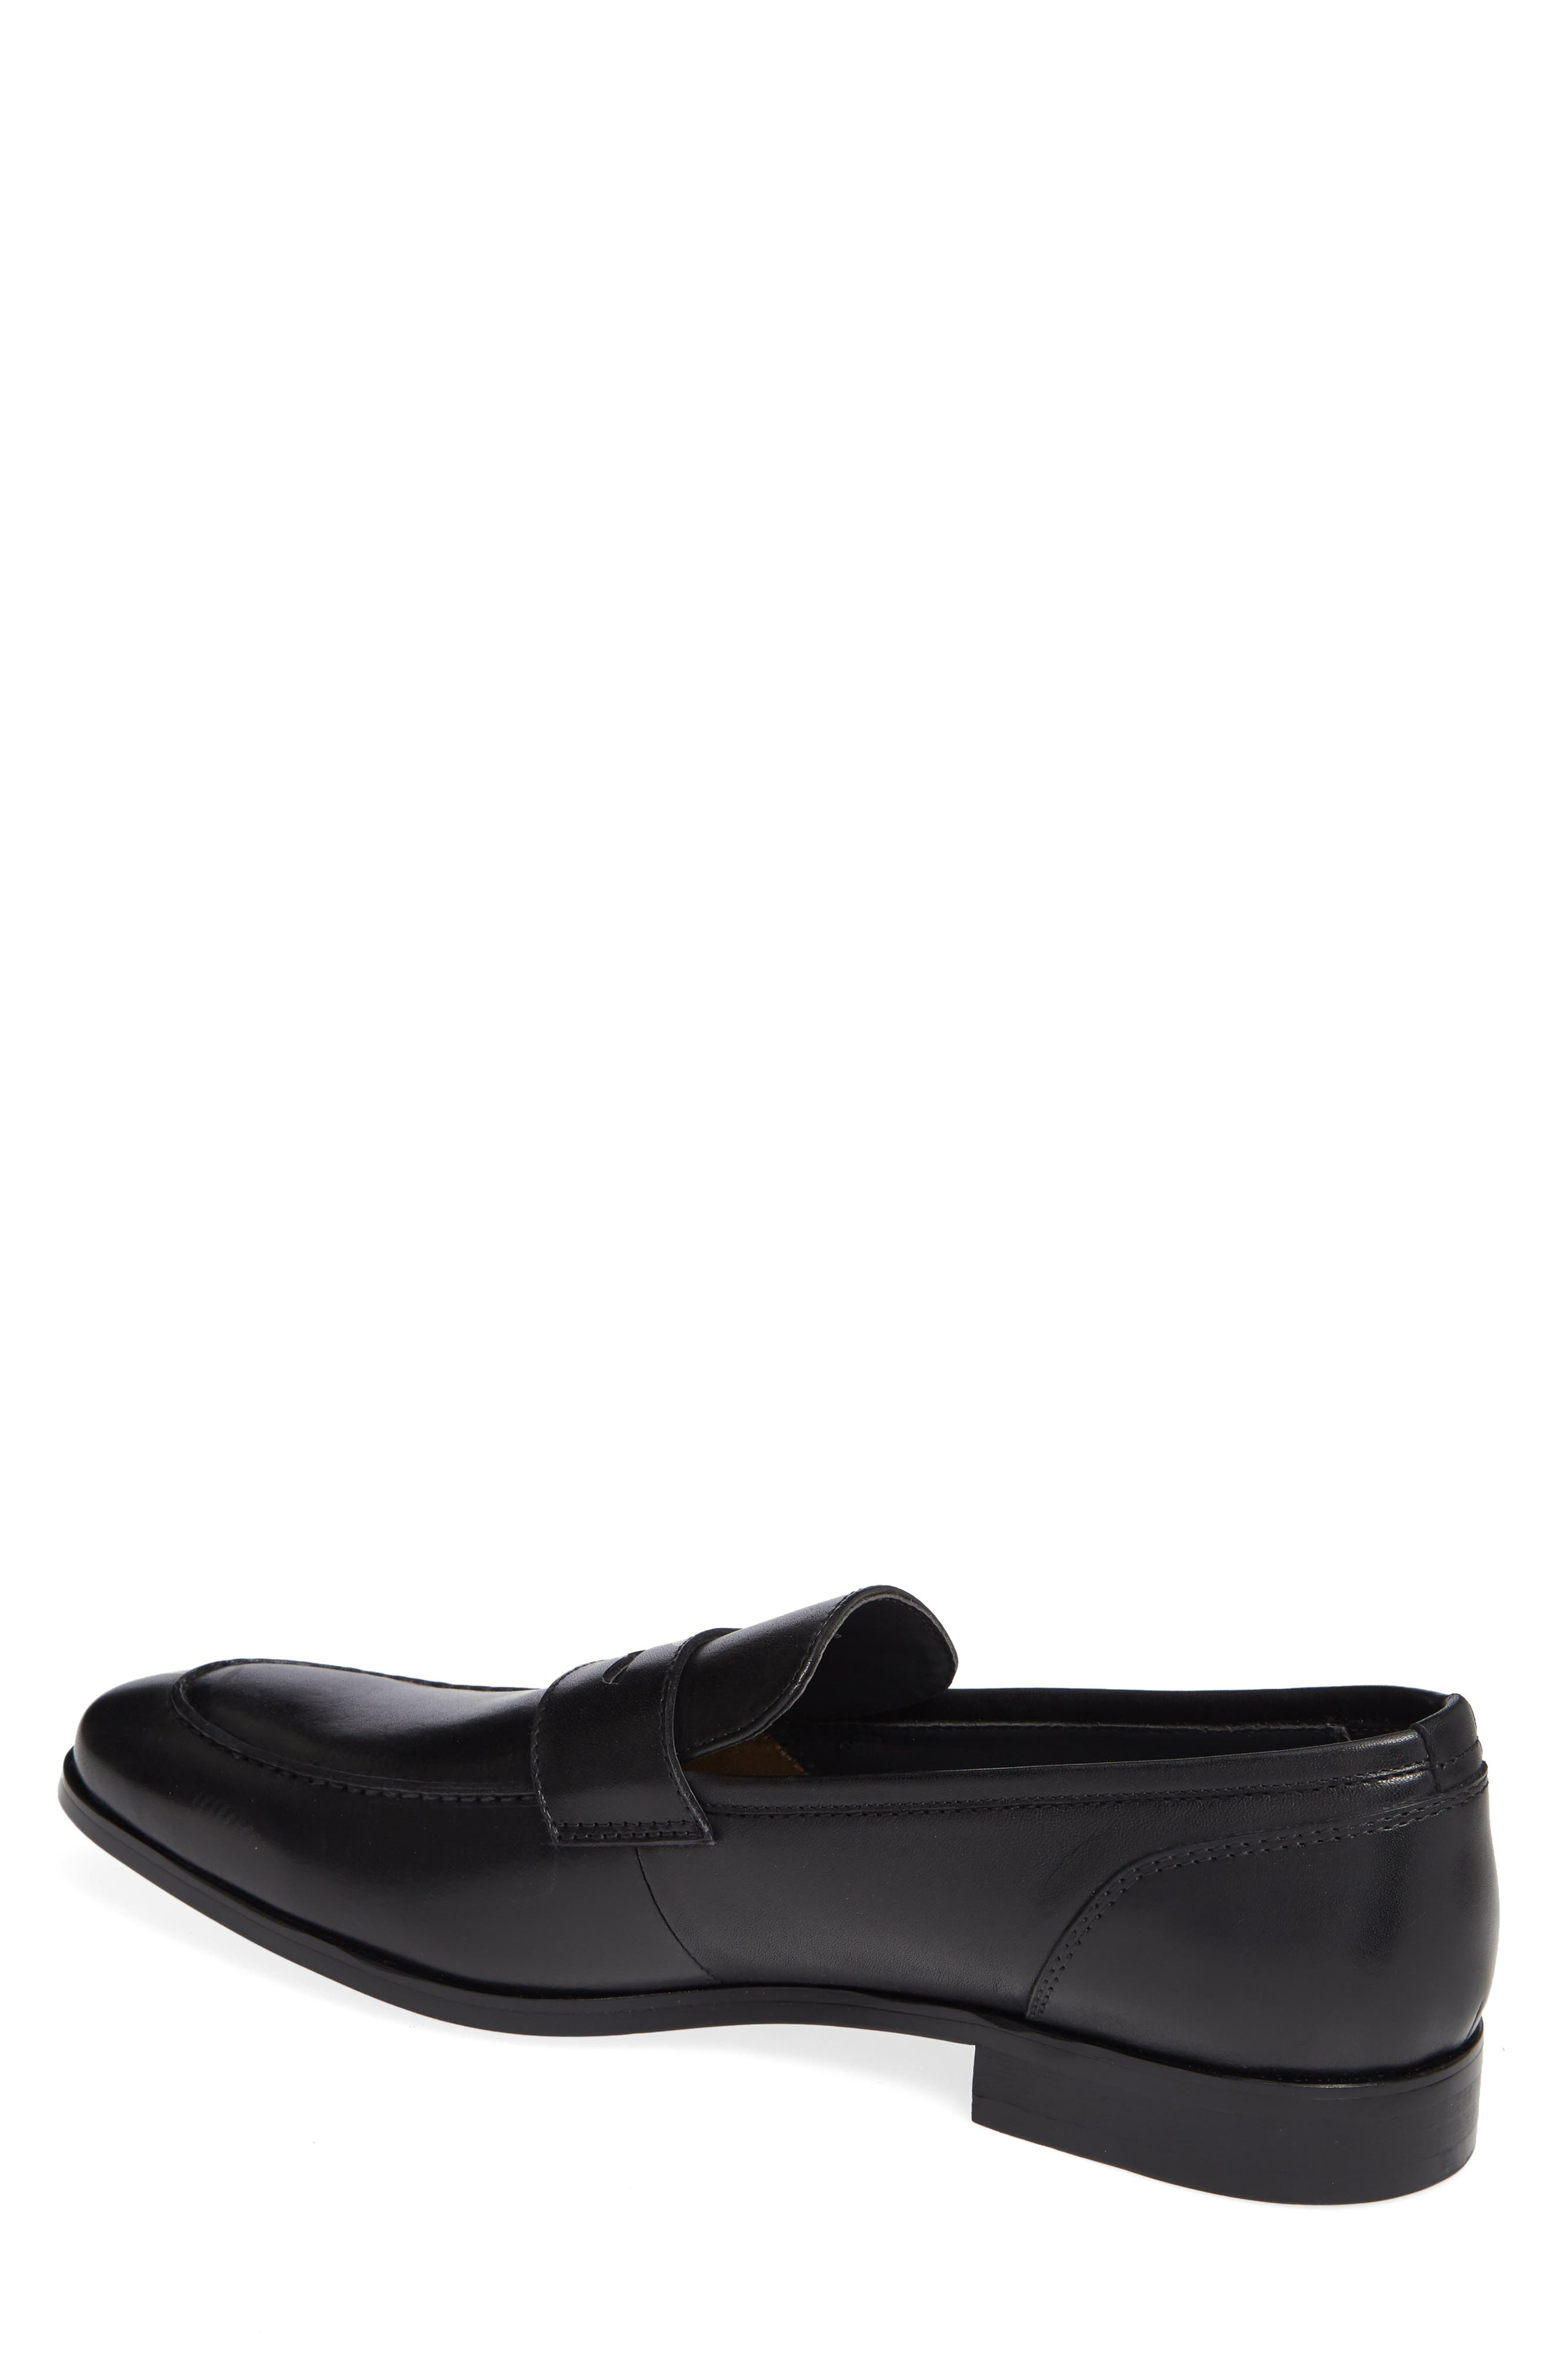 Denio Apron Toe Penny Loafer,                             Alternate thumbnail 2, color,                             BLACK LEATHER